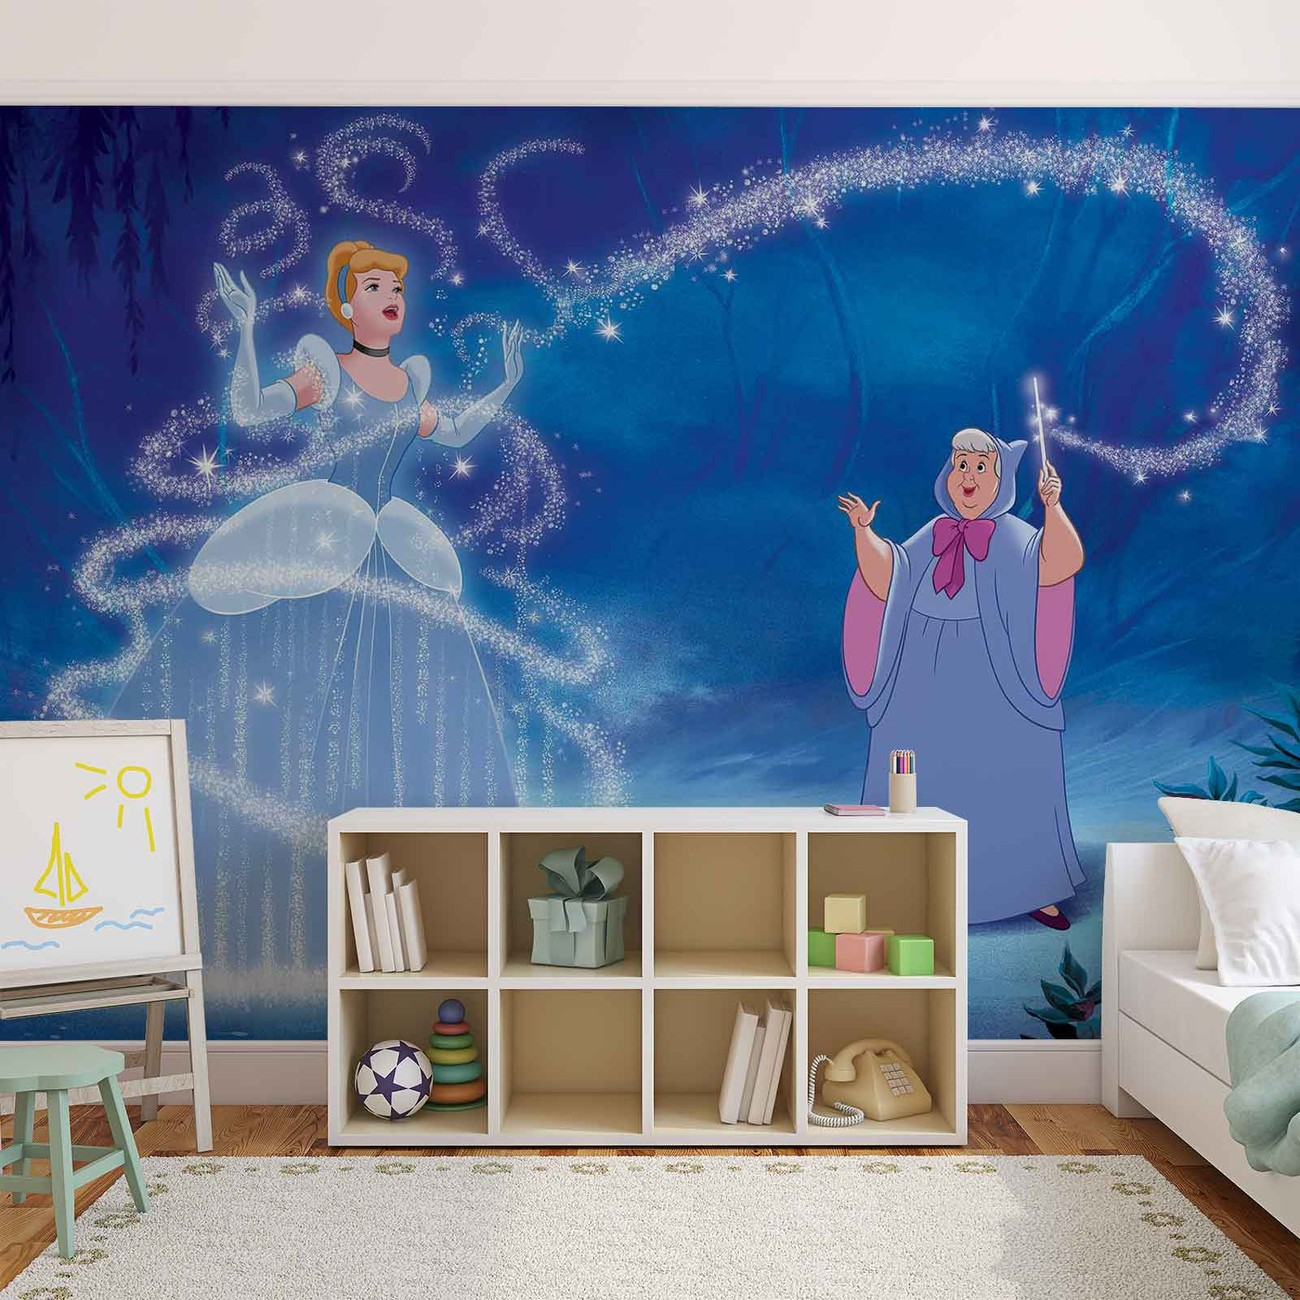 Disney princesses cinderella wall paper mural buy at for Disney wall mural uk